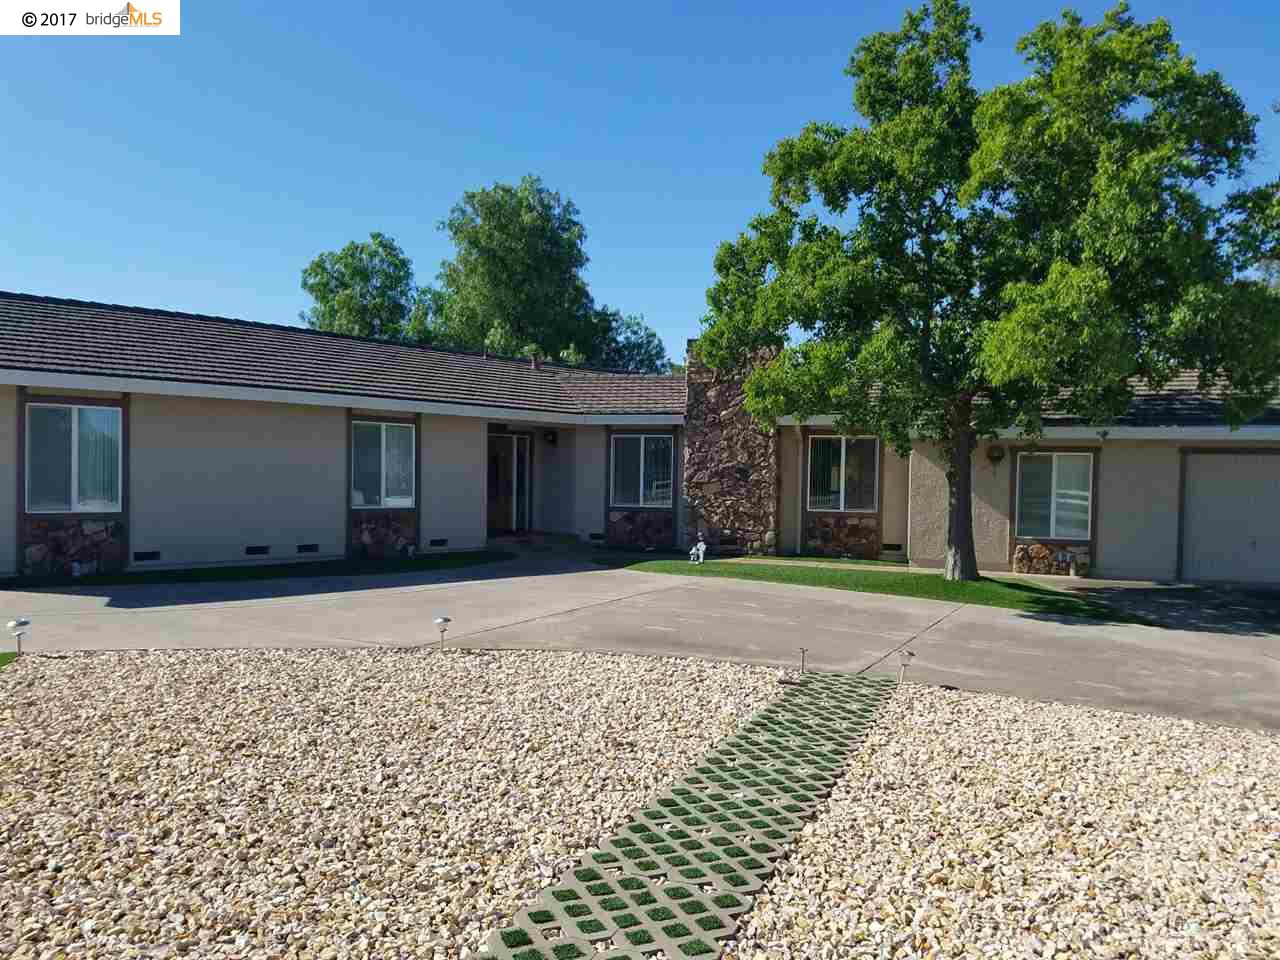 Additional photo for property listing at 59-67 Old Stagecoach Road  Brentwood, California 94513 Estados Unidos